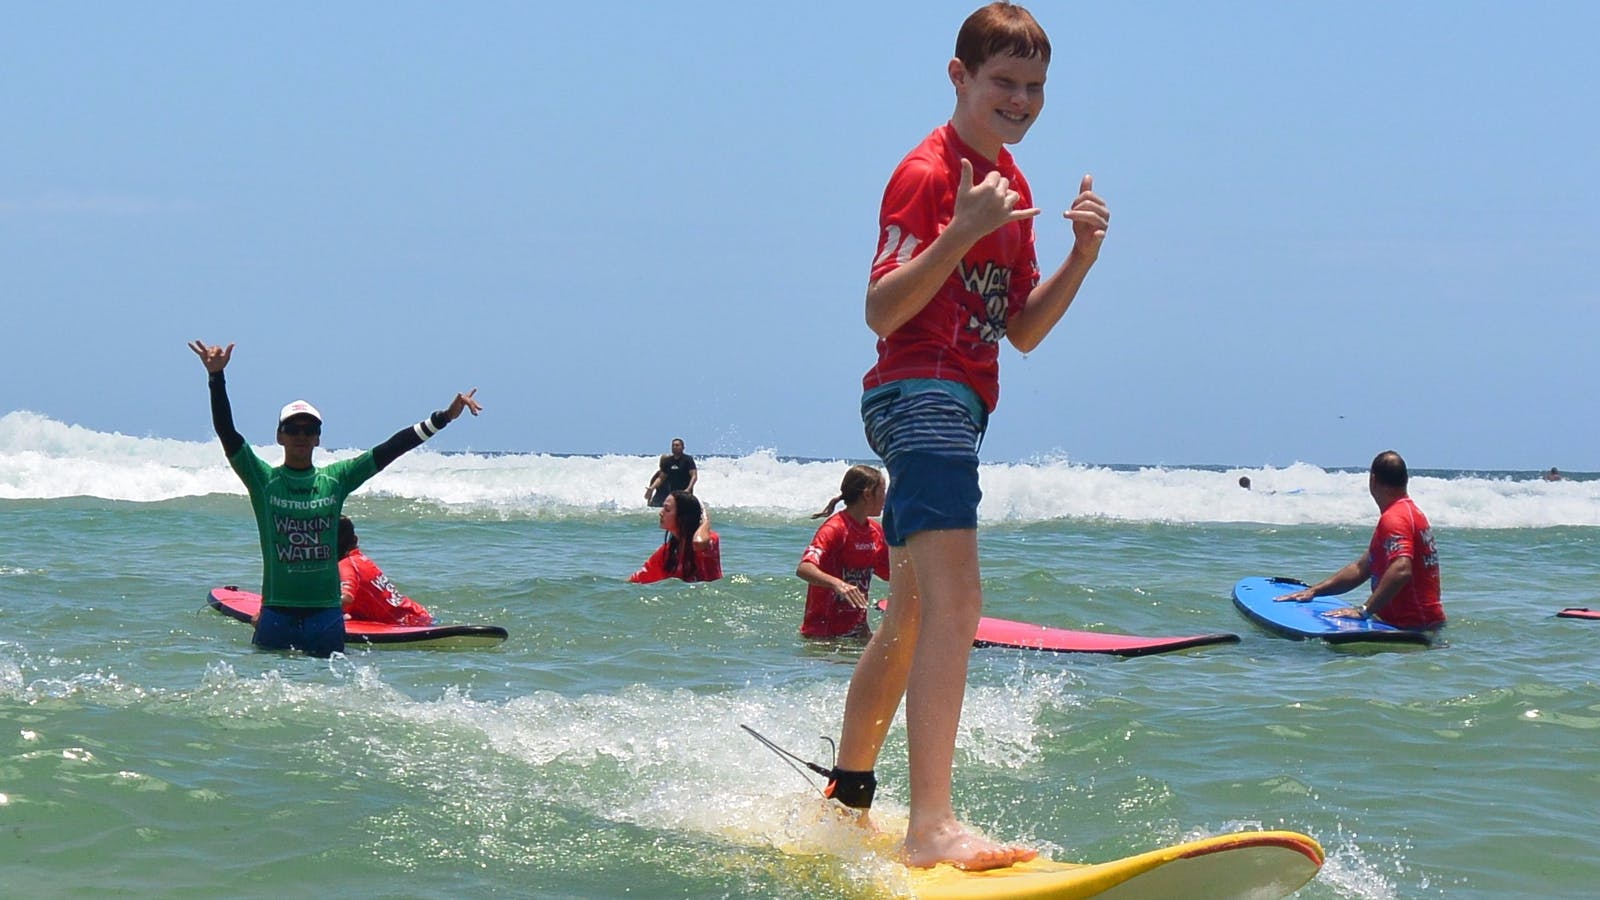 Easy success for everyone in their comprehensive Coolangatta Surf Lessons at Greenmount Beach